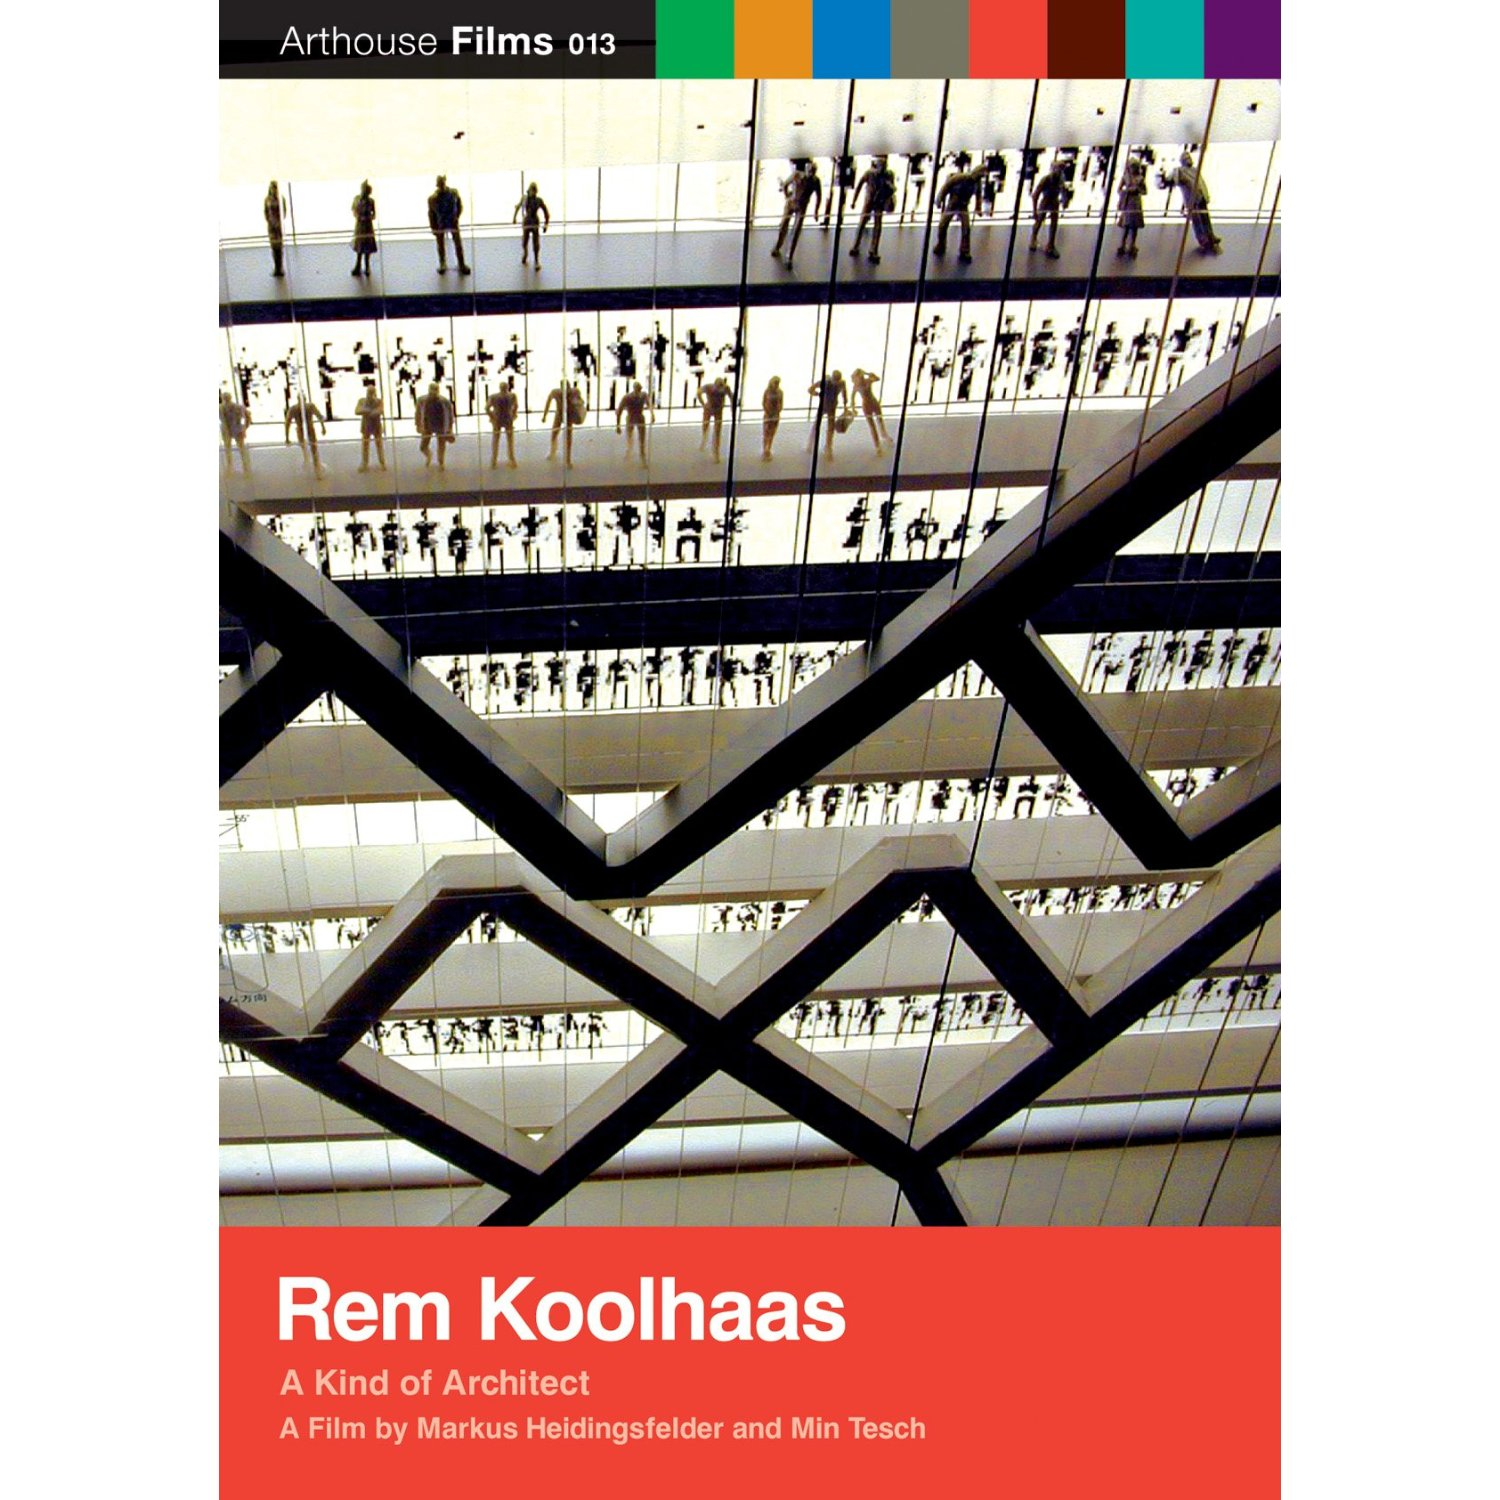 rem koolhaas dvd